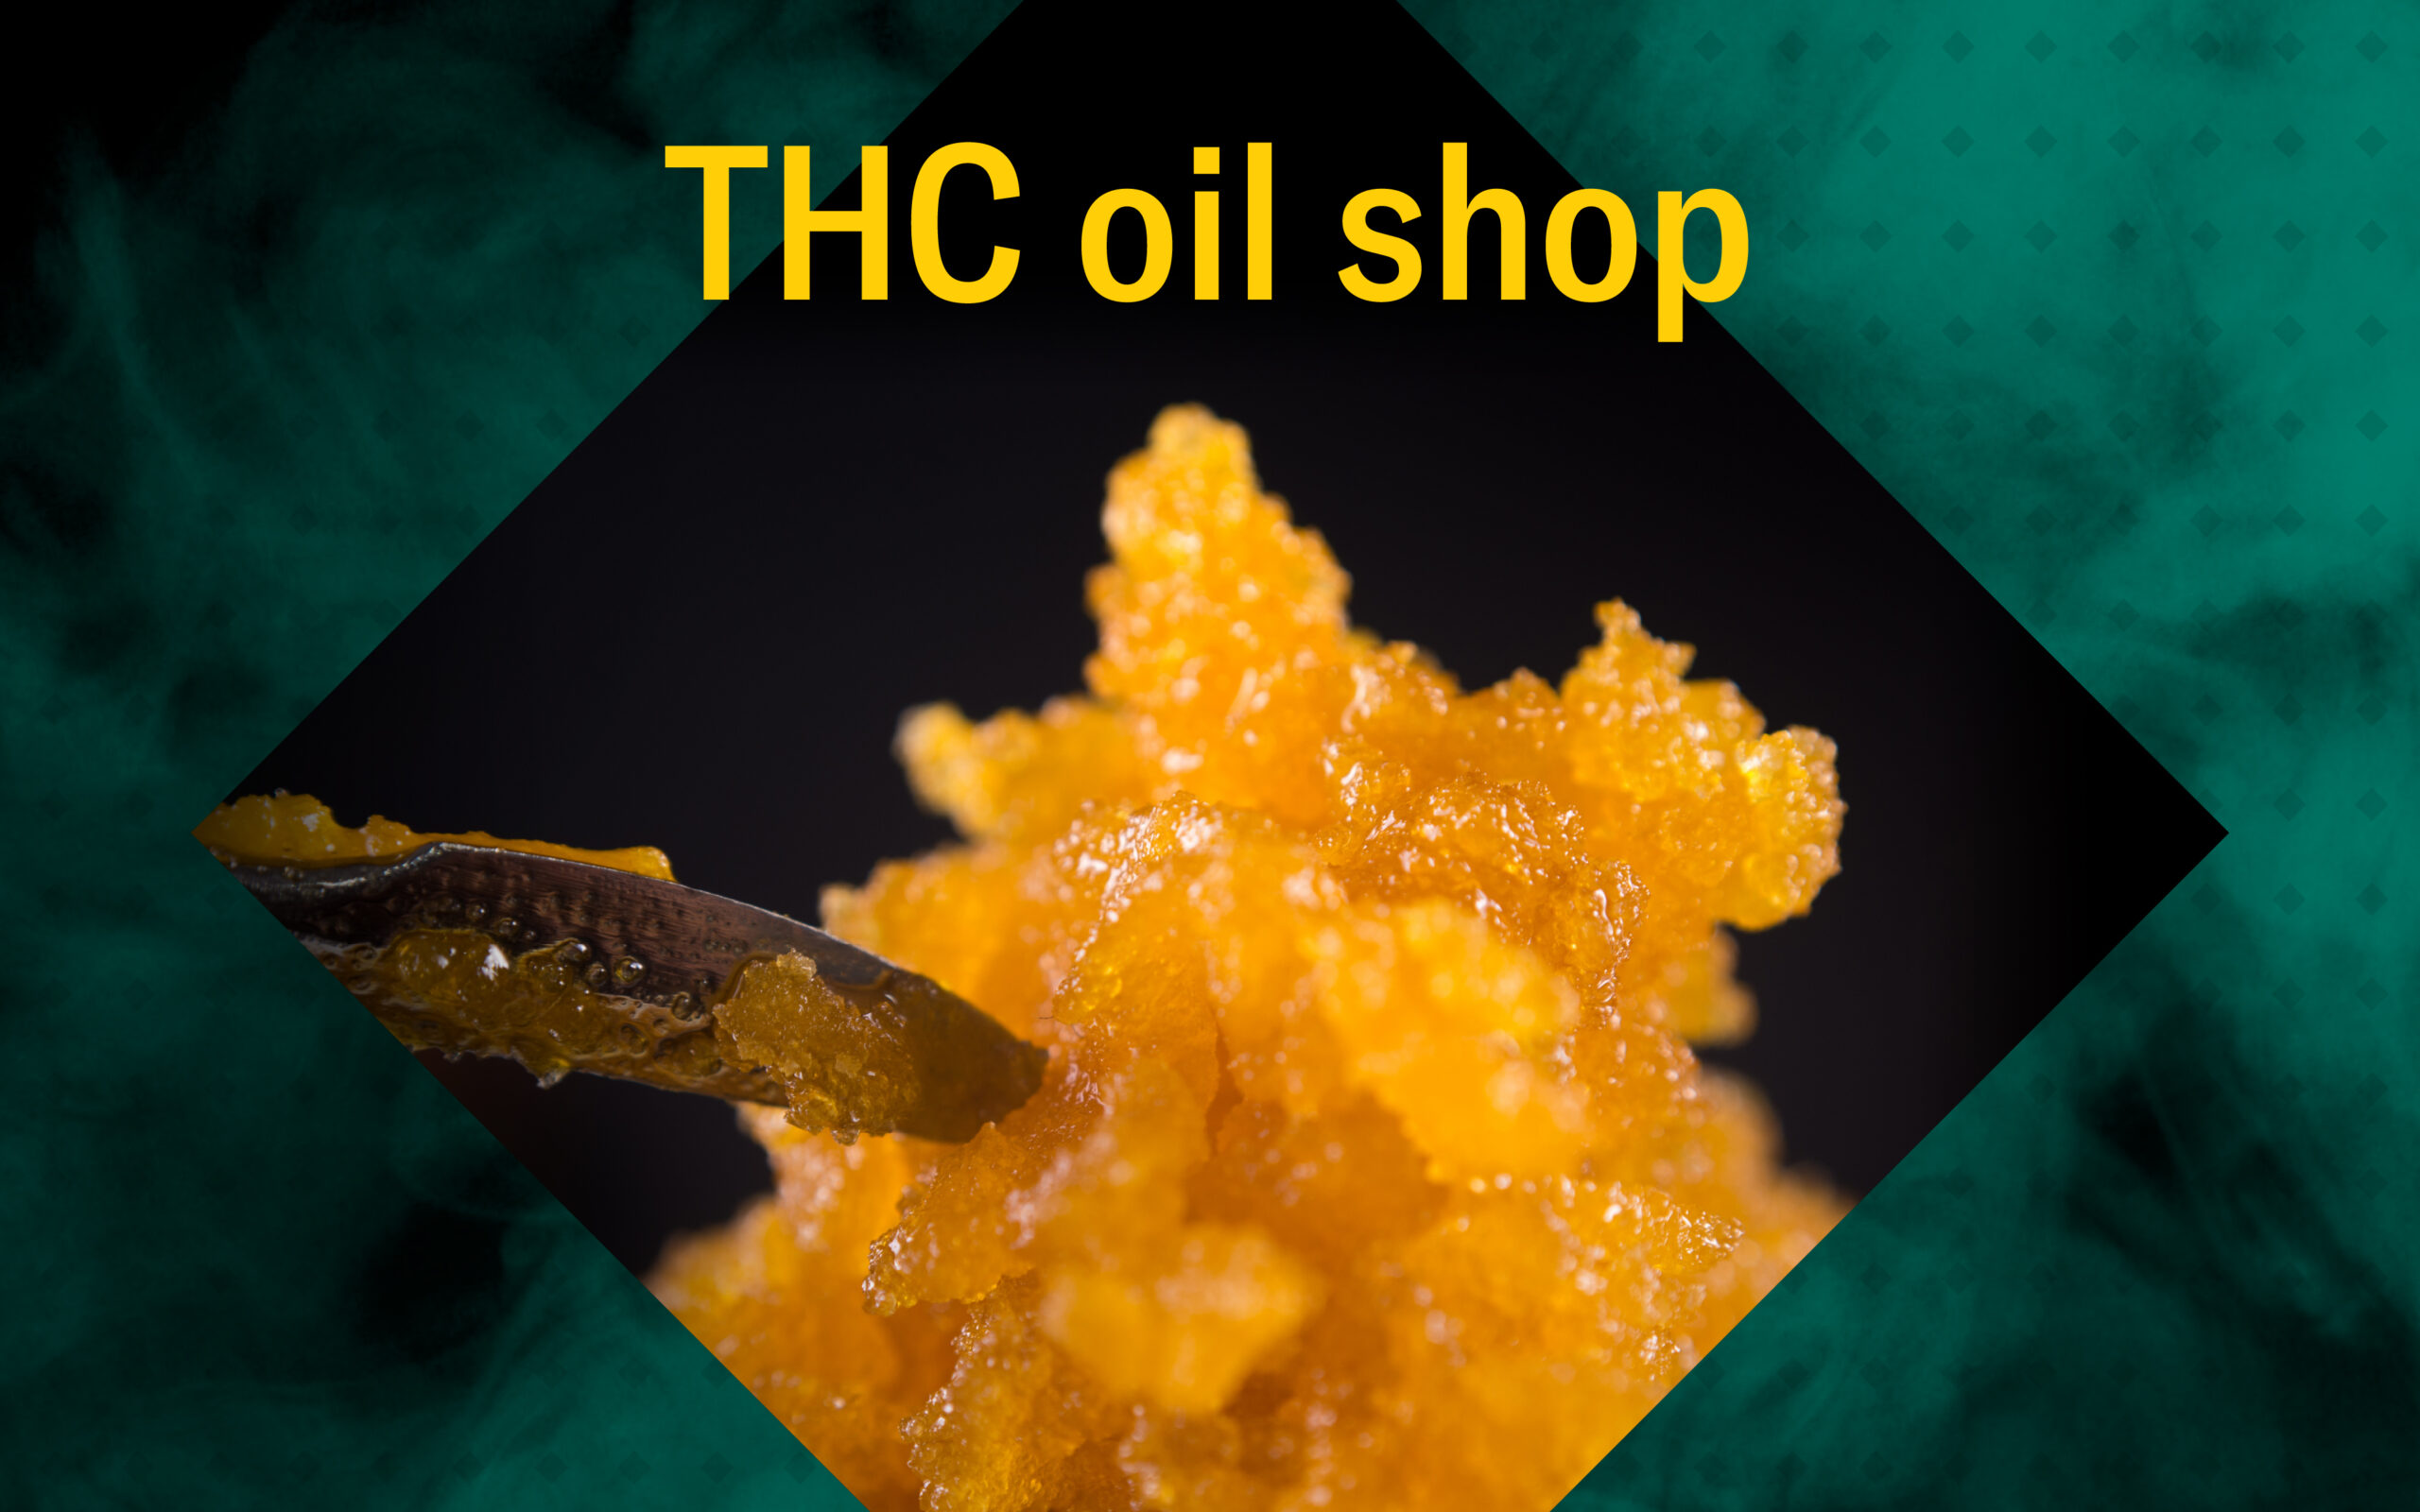 Shop for THC oils and cannabis concentrates